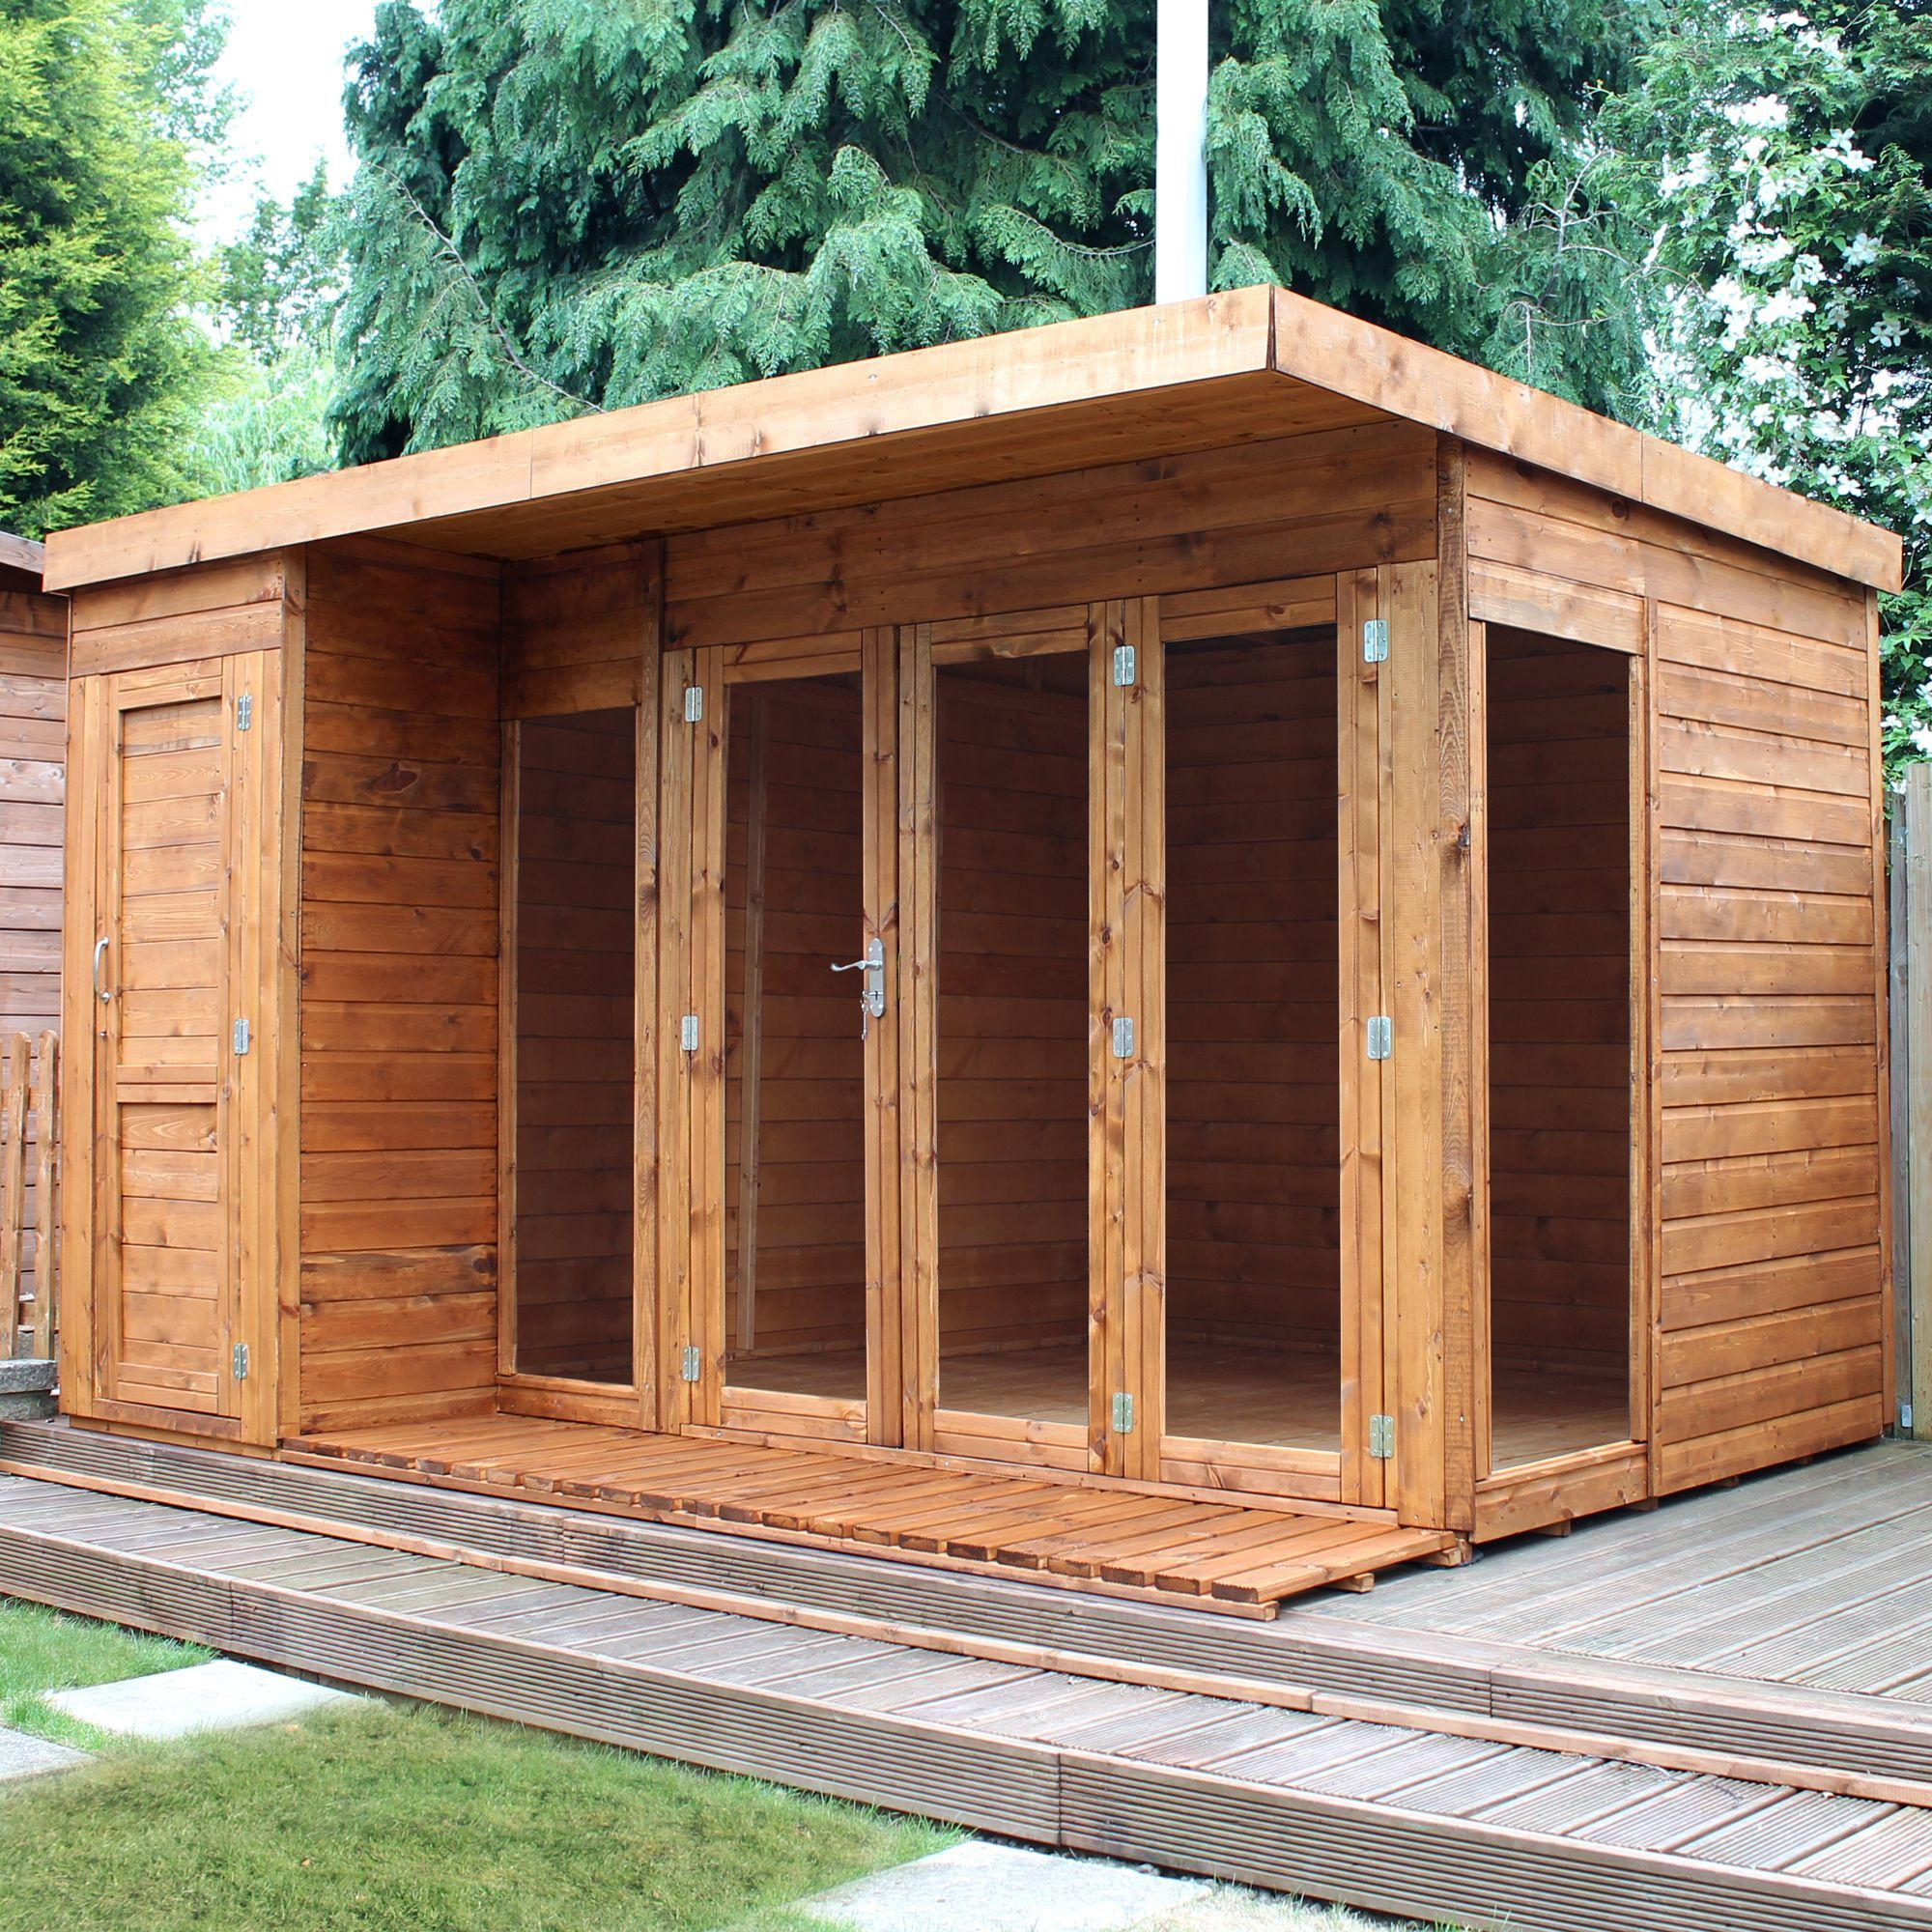 Diy supplies accessories diy at b q - 12x8 Combi Garden Room Shiplap Timber Summerhouse Store With Assembly Service